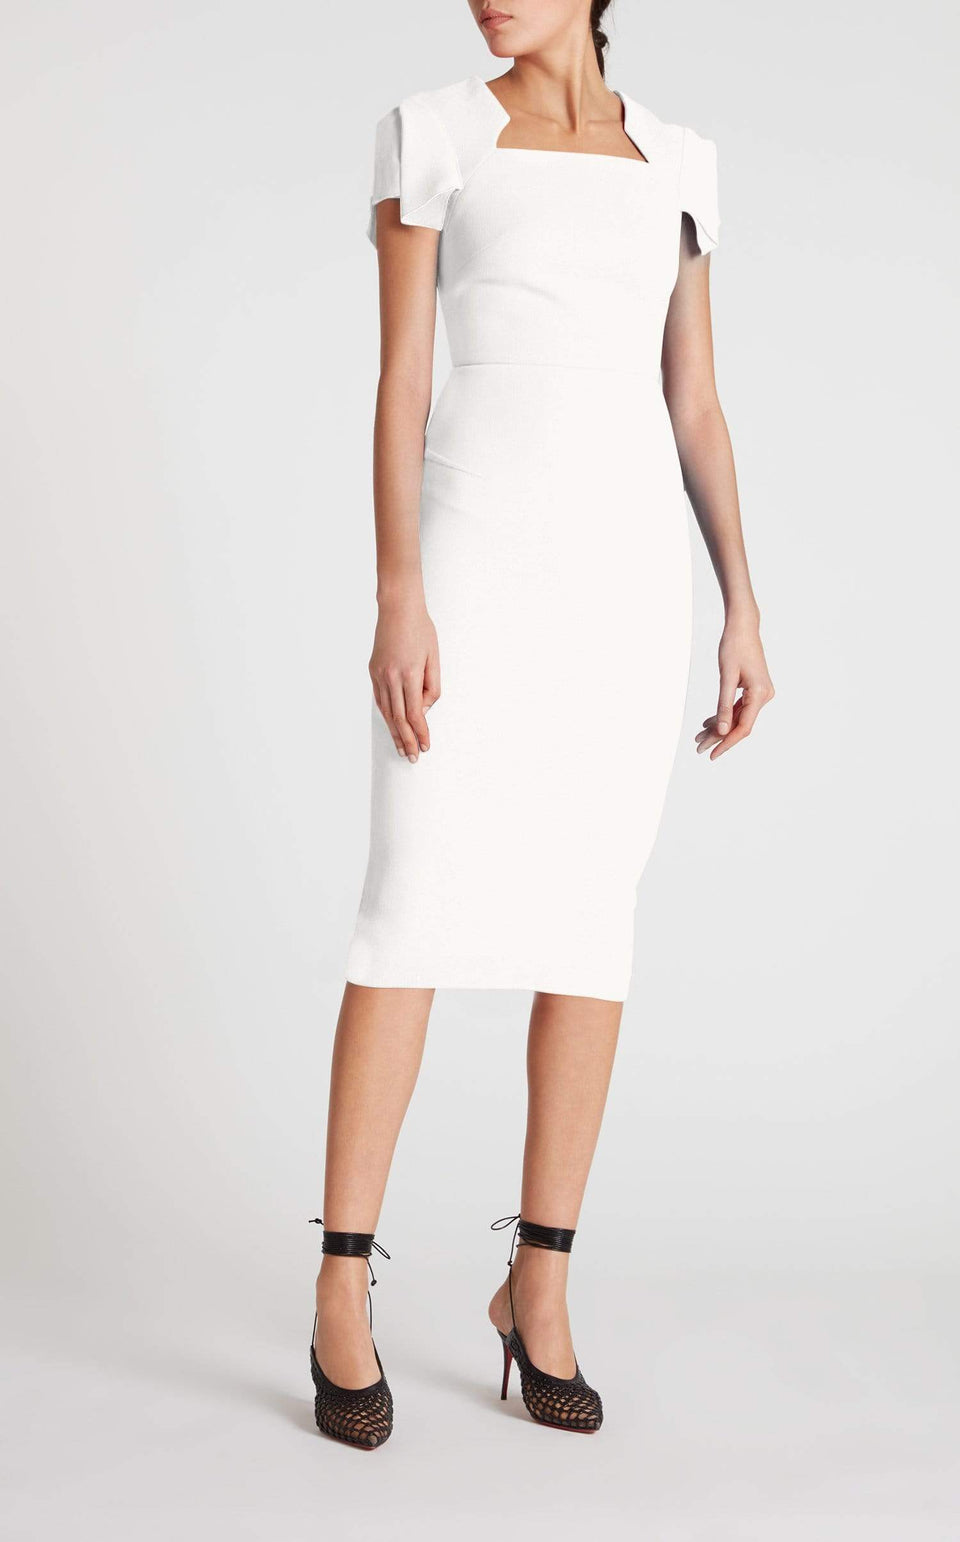 Royston Dress In White from Roland Mouret